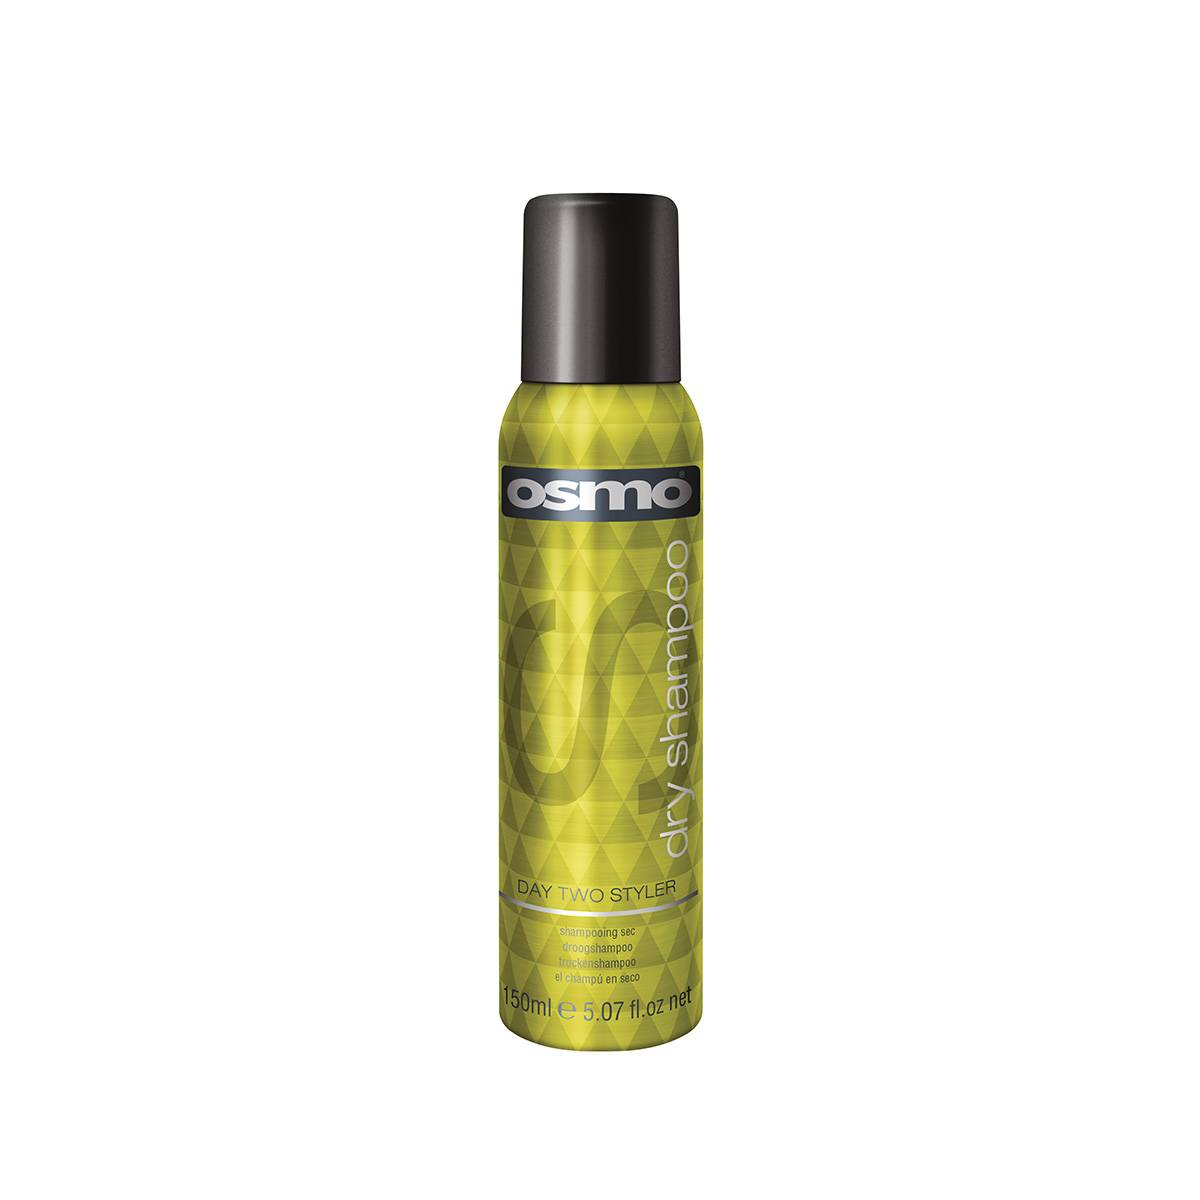 Day Two Styler 150ml Stile&finish